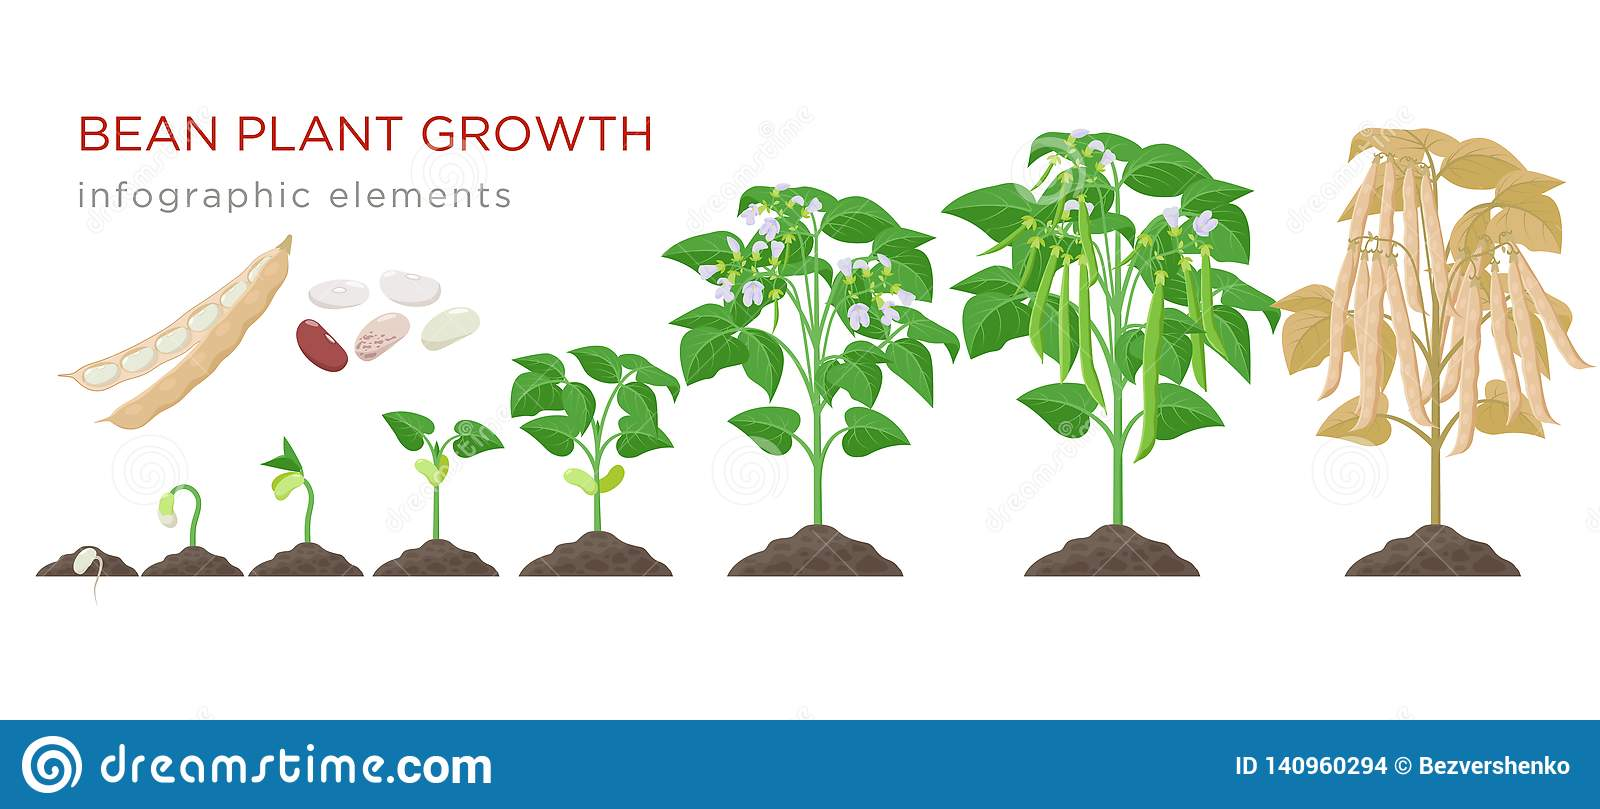 Bean Plant Growth Stages Infographic Elements In Flat